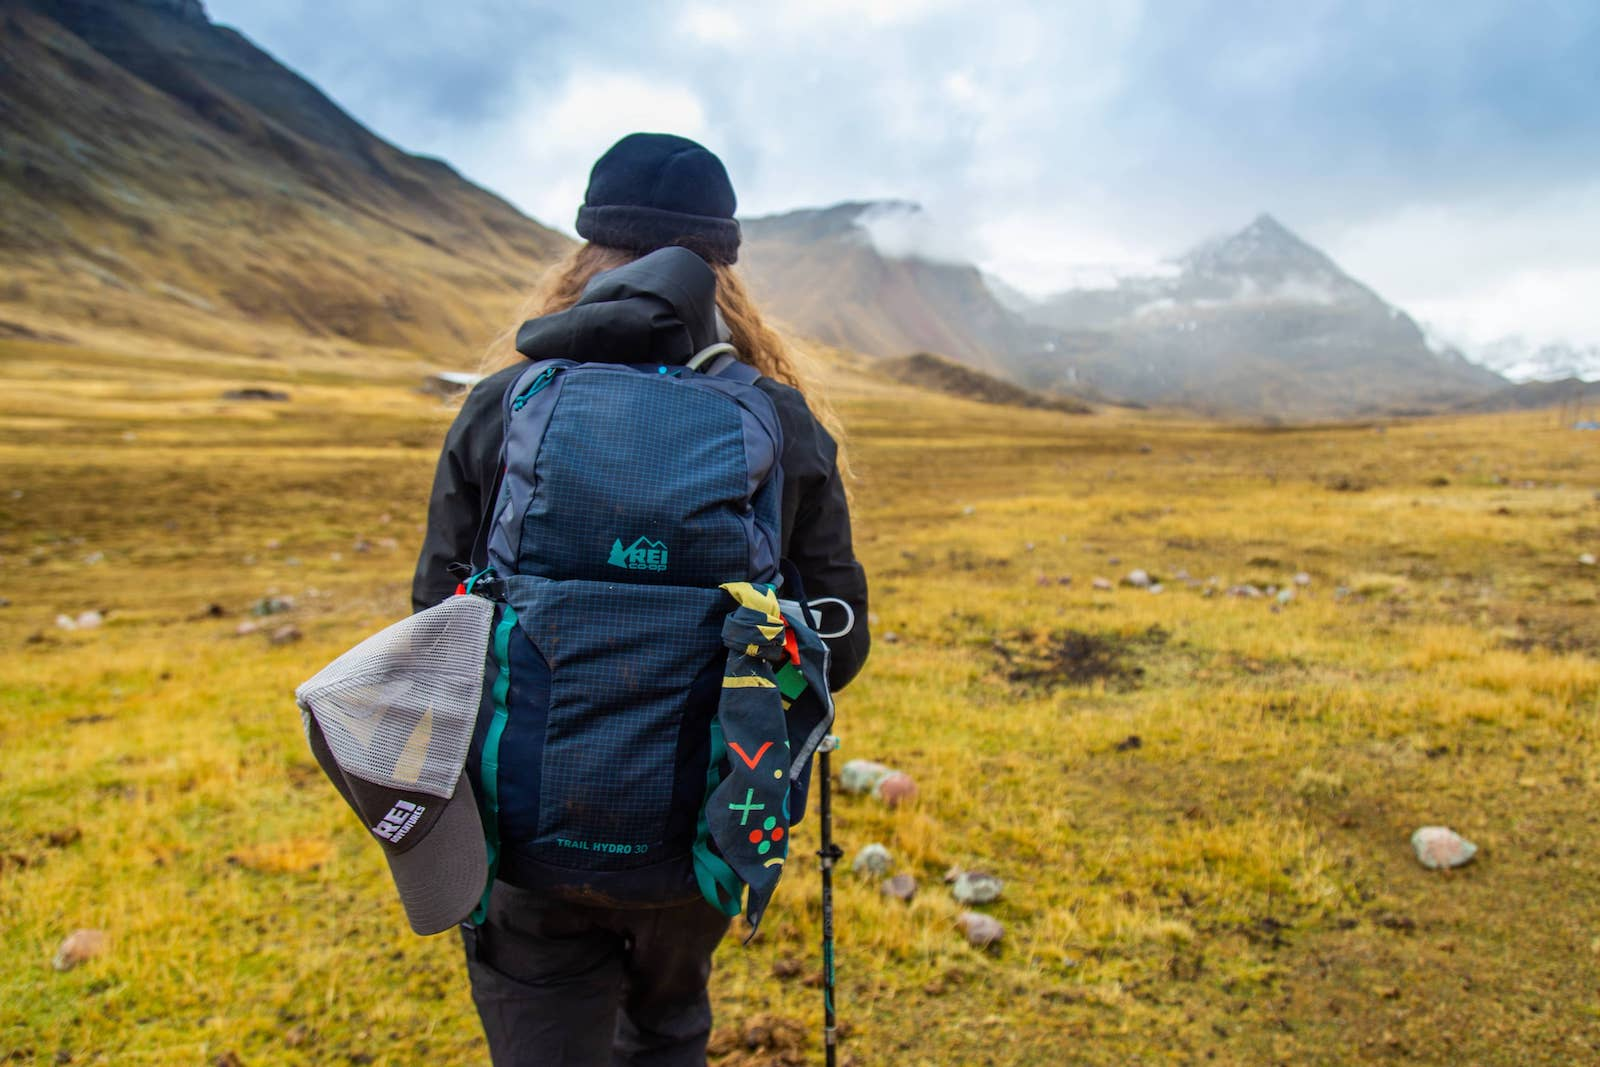 How to Pack a Backpack for Camping - Best Way to Pack a Backpack - Loading a Backpack